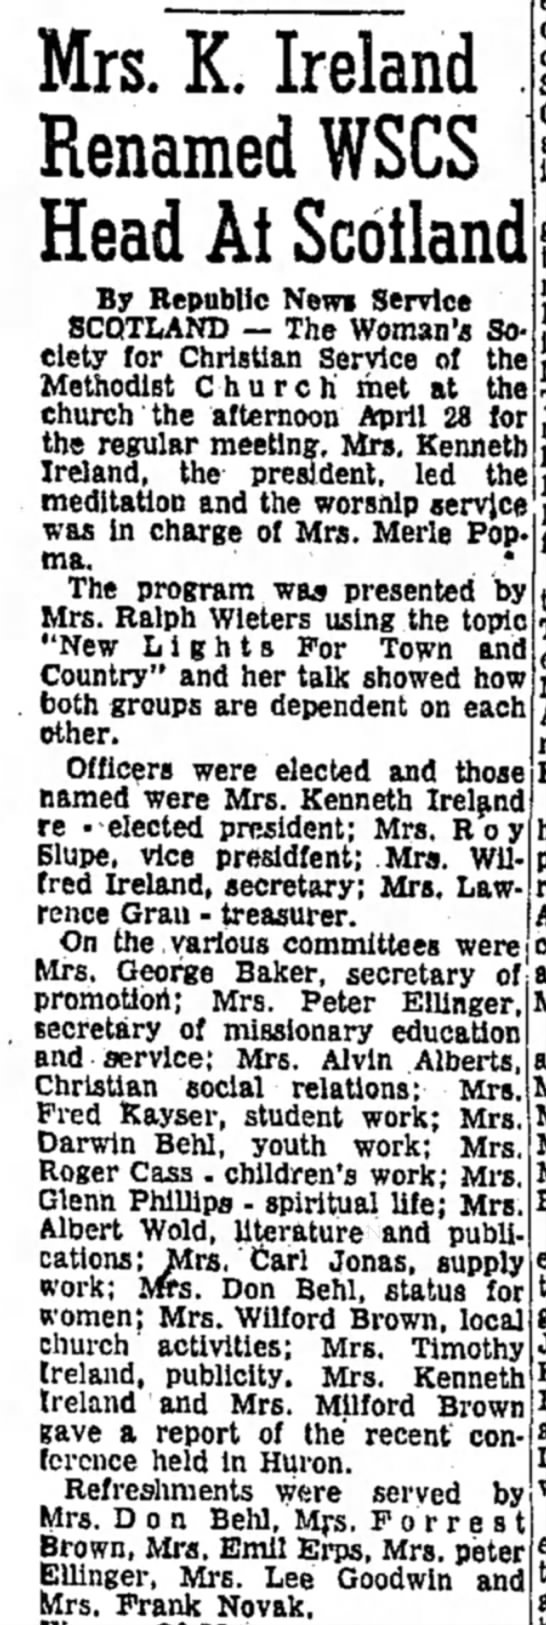 The Daily Republic (Mitchell, SD) 6 May 1960 p. 6 -